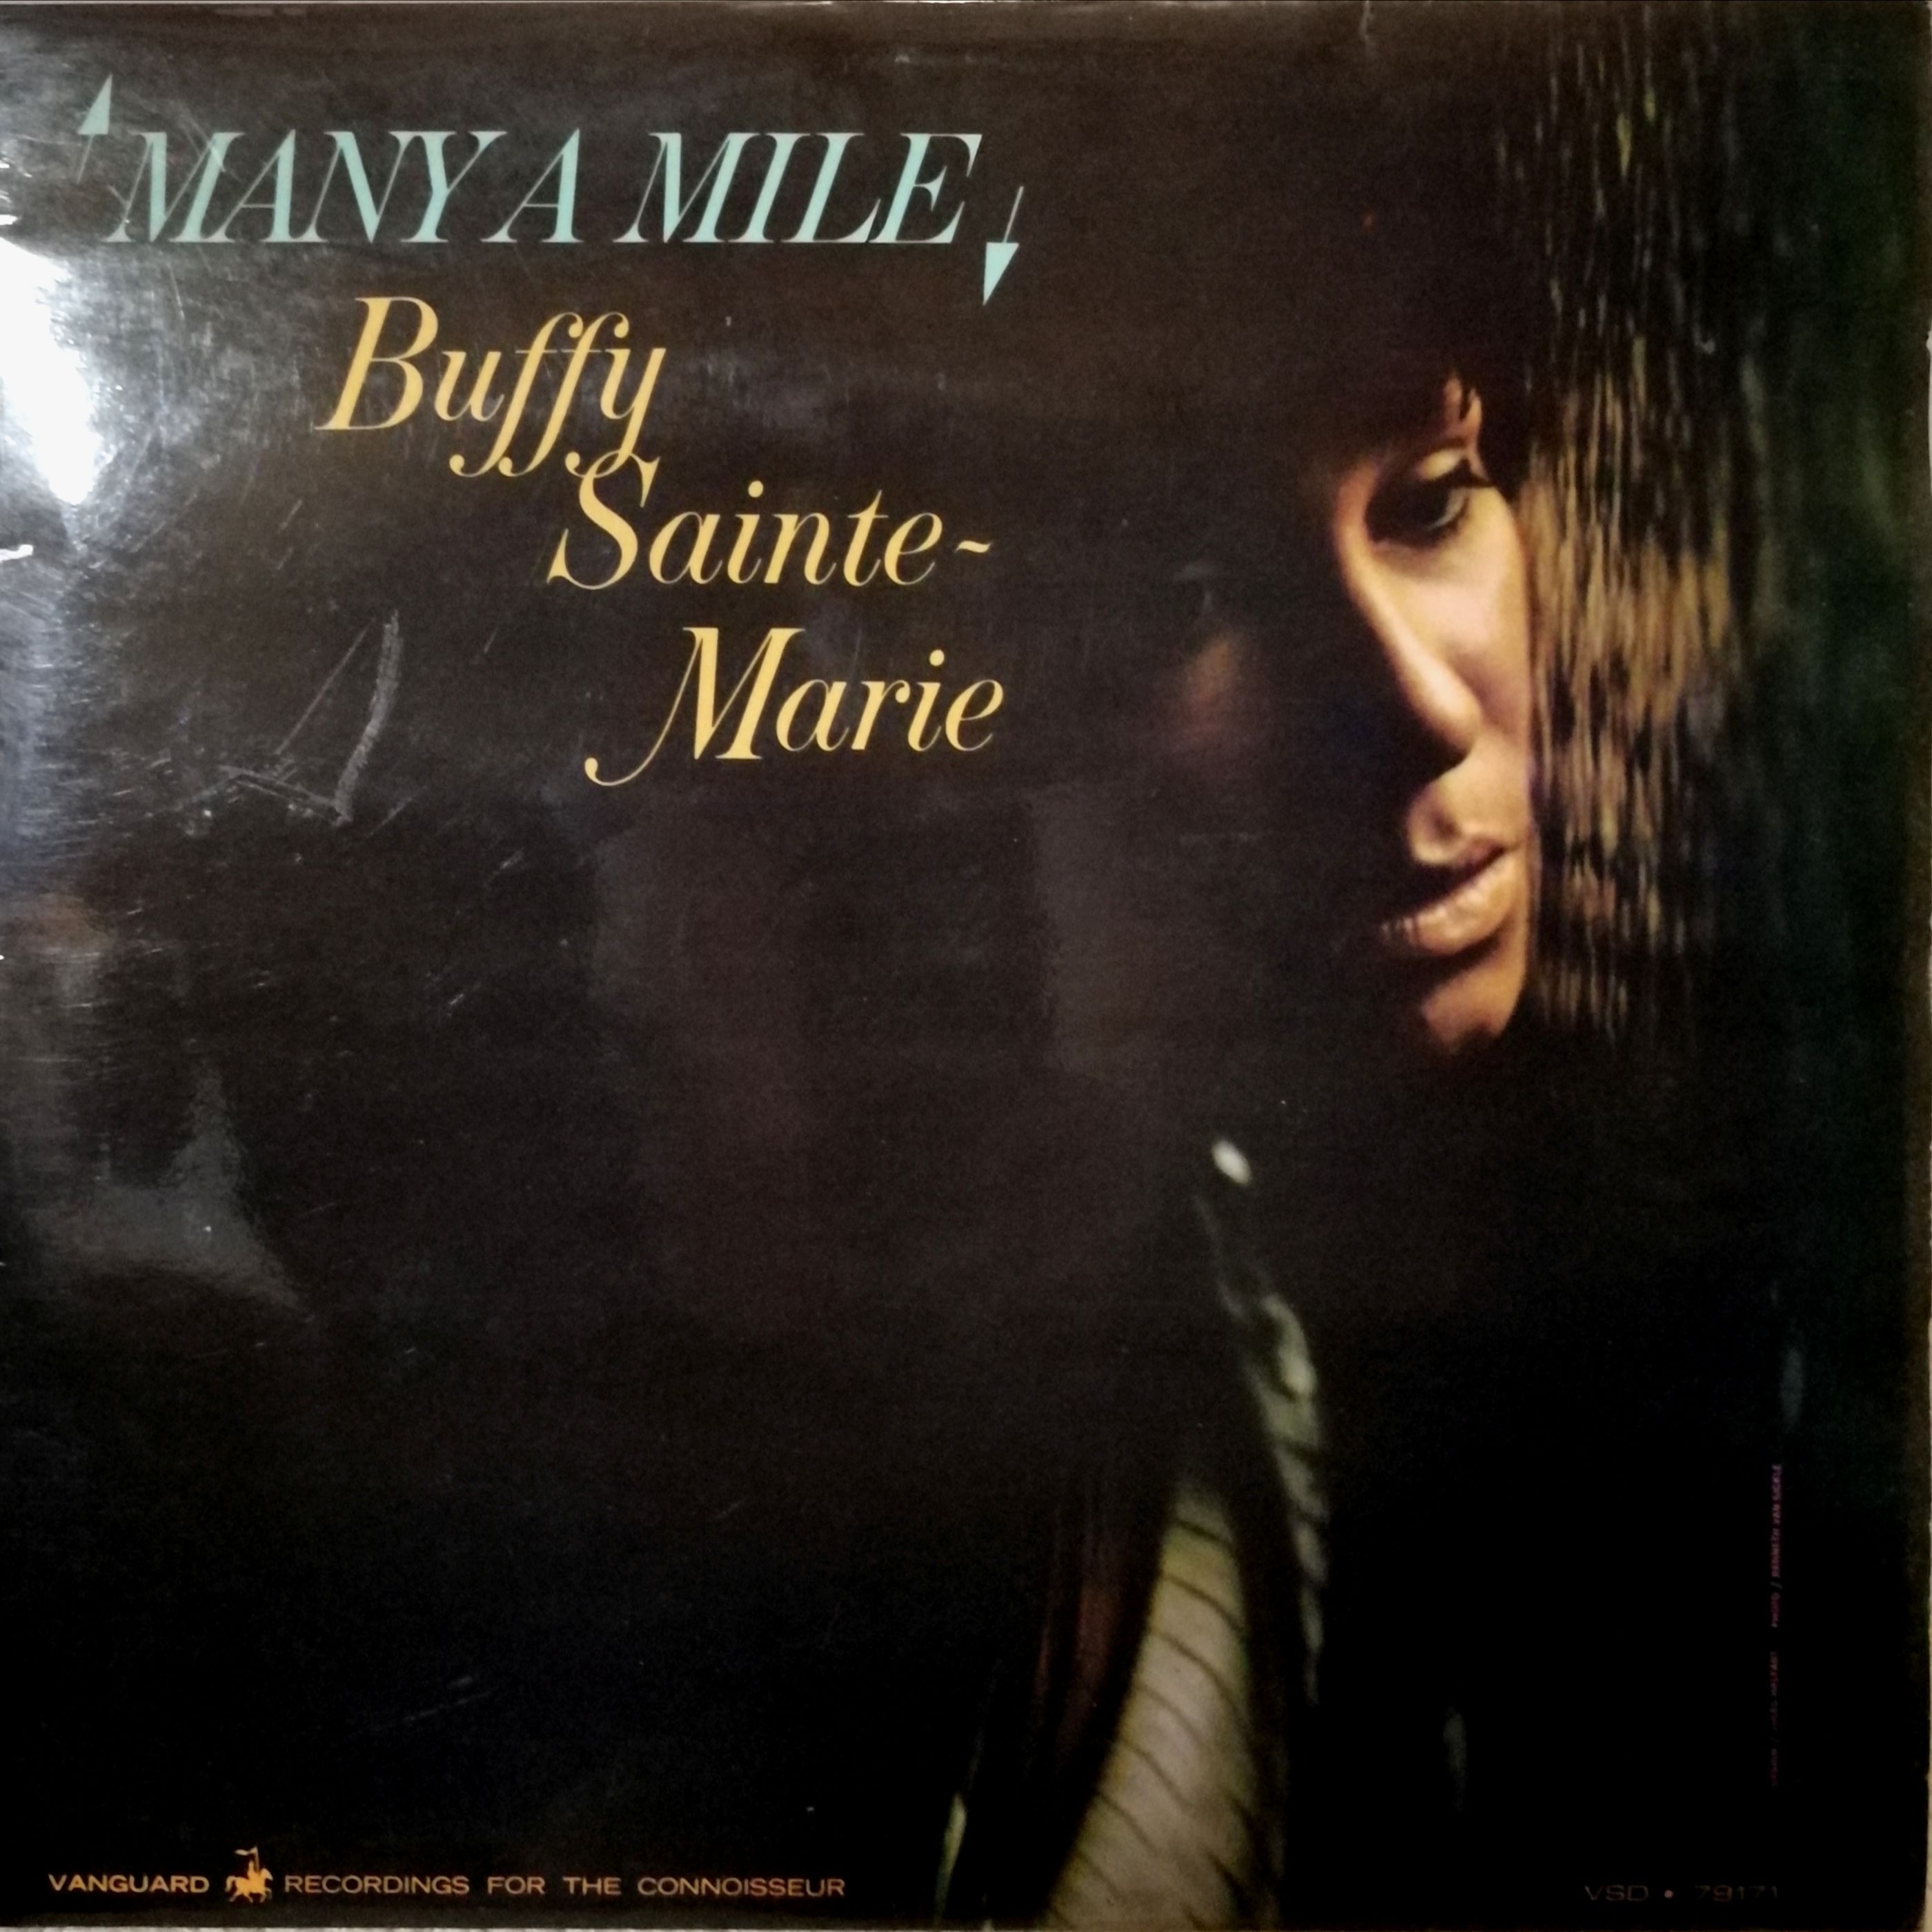 Buffy Sainte-Marie Many a Mile LP undefined